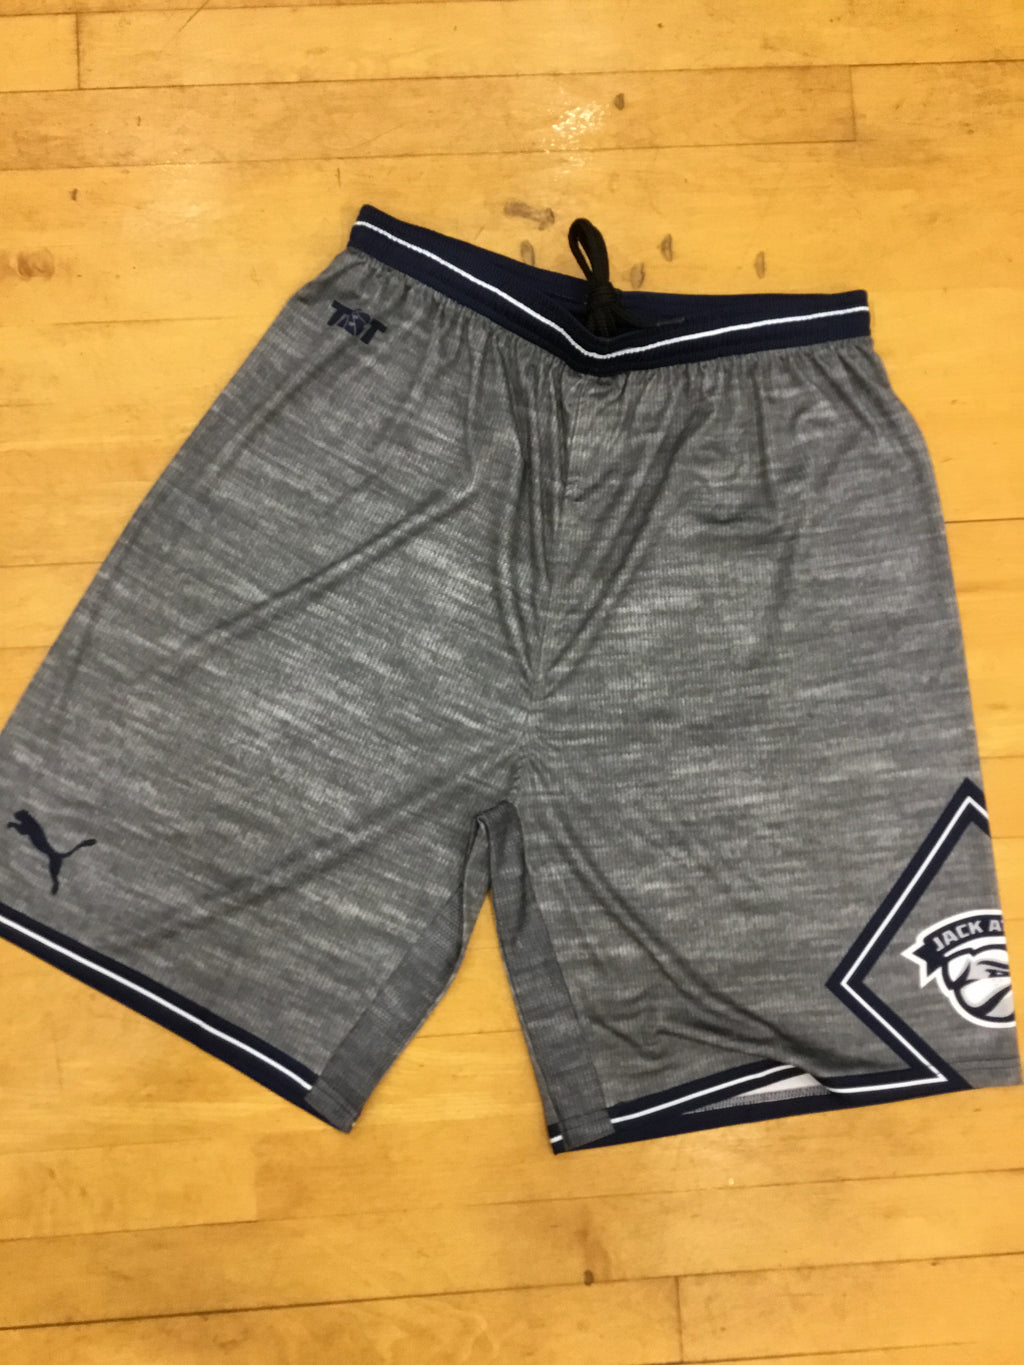 Jack Attack (Georgetown Alumni) - 2018 Official Team Shorts